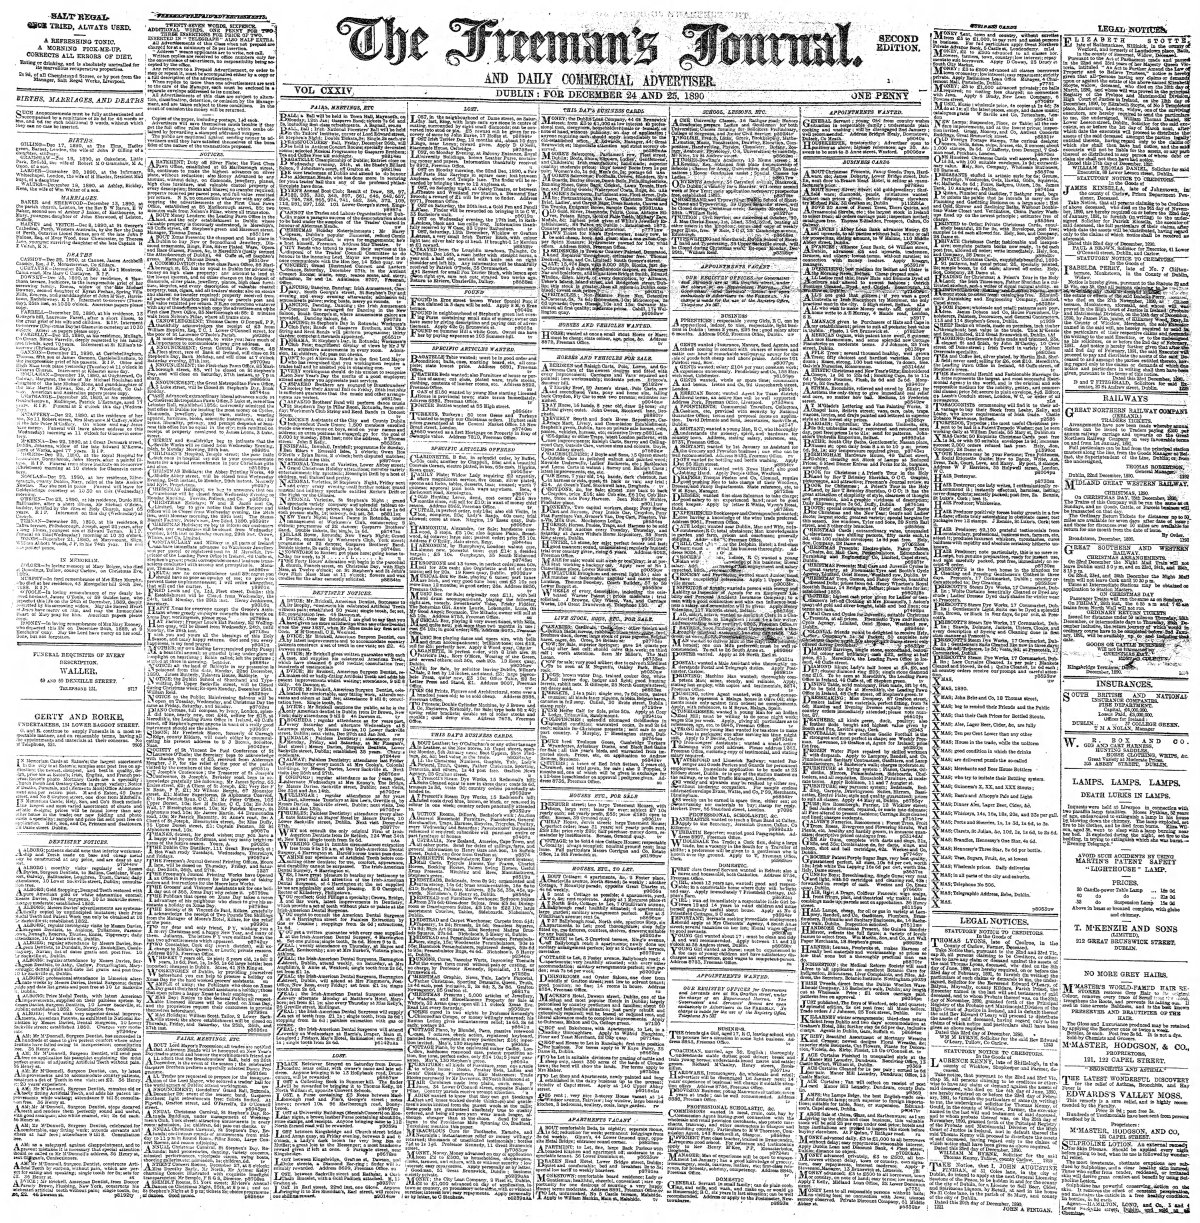 The_Freeman_s_Journal_Wed__Dec_24__1890_page 1 full